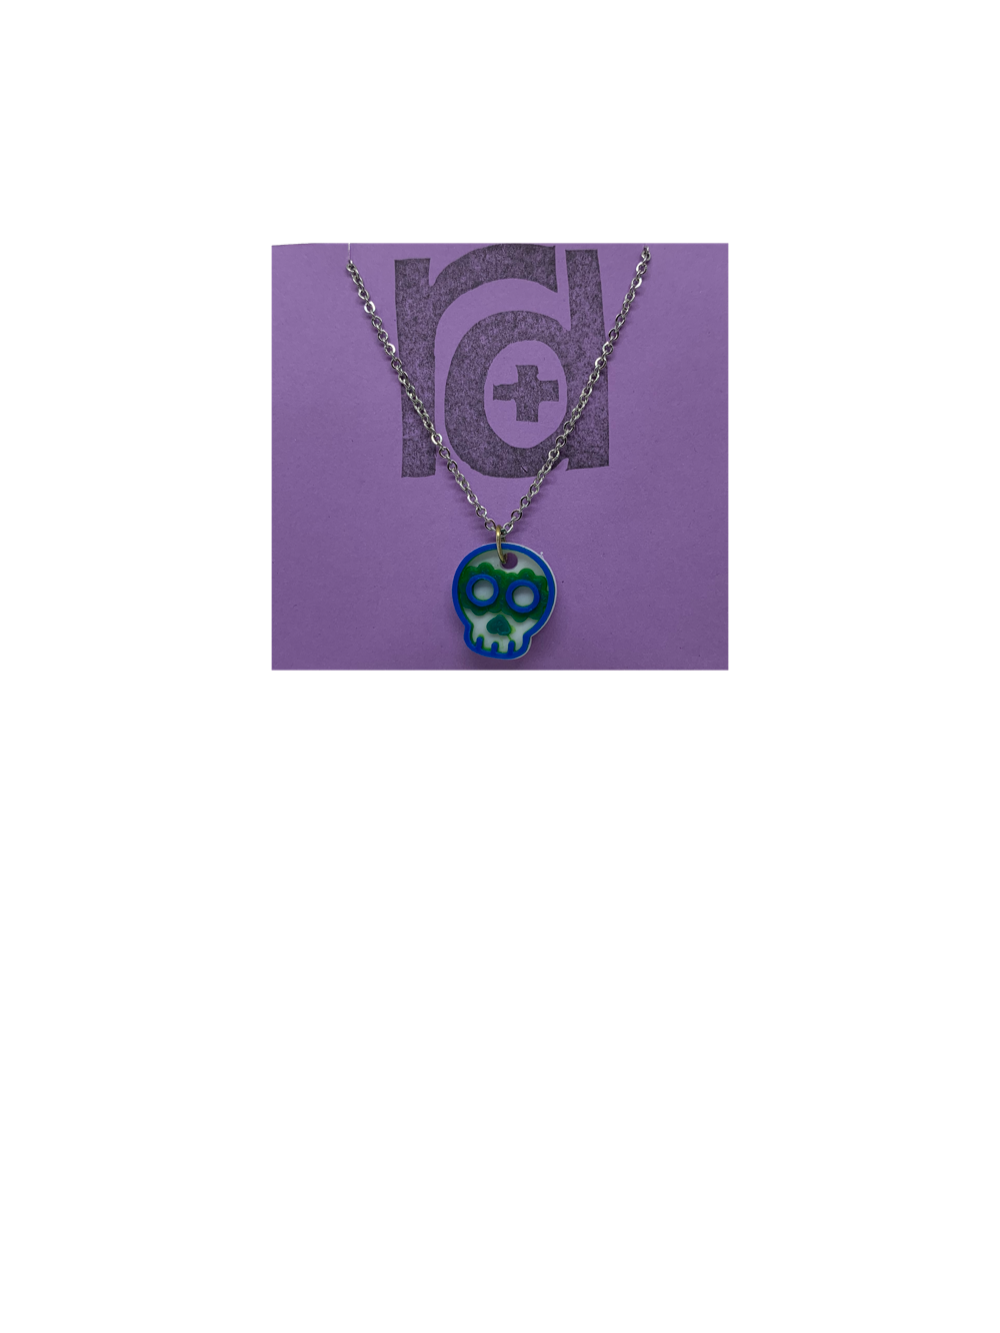 Shown on a light purple R+D earring card is a necklace with a sugar skull pendant. The small pendant is 3D printed in 3 colors: white, green, and blue.